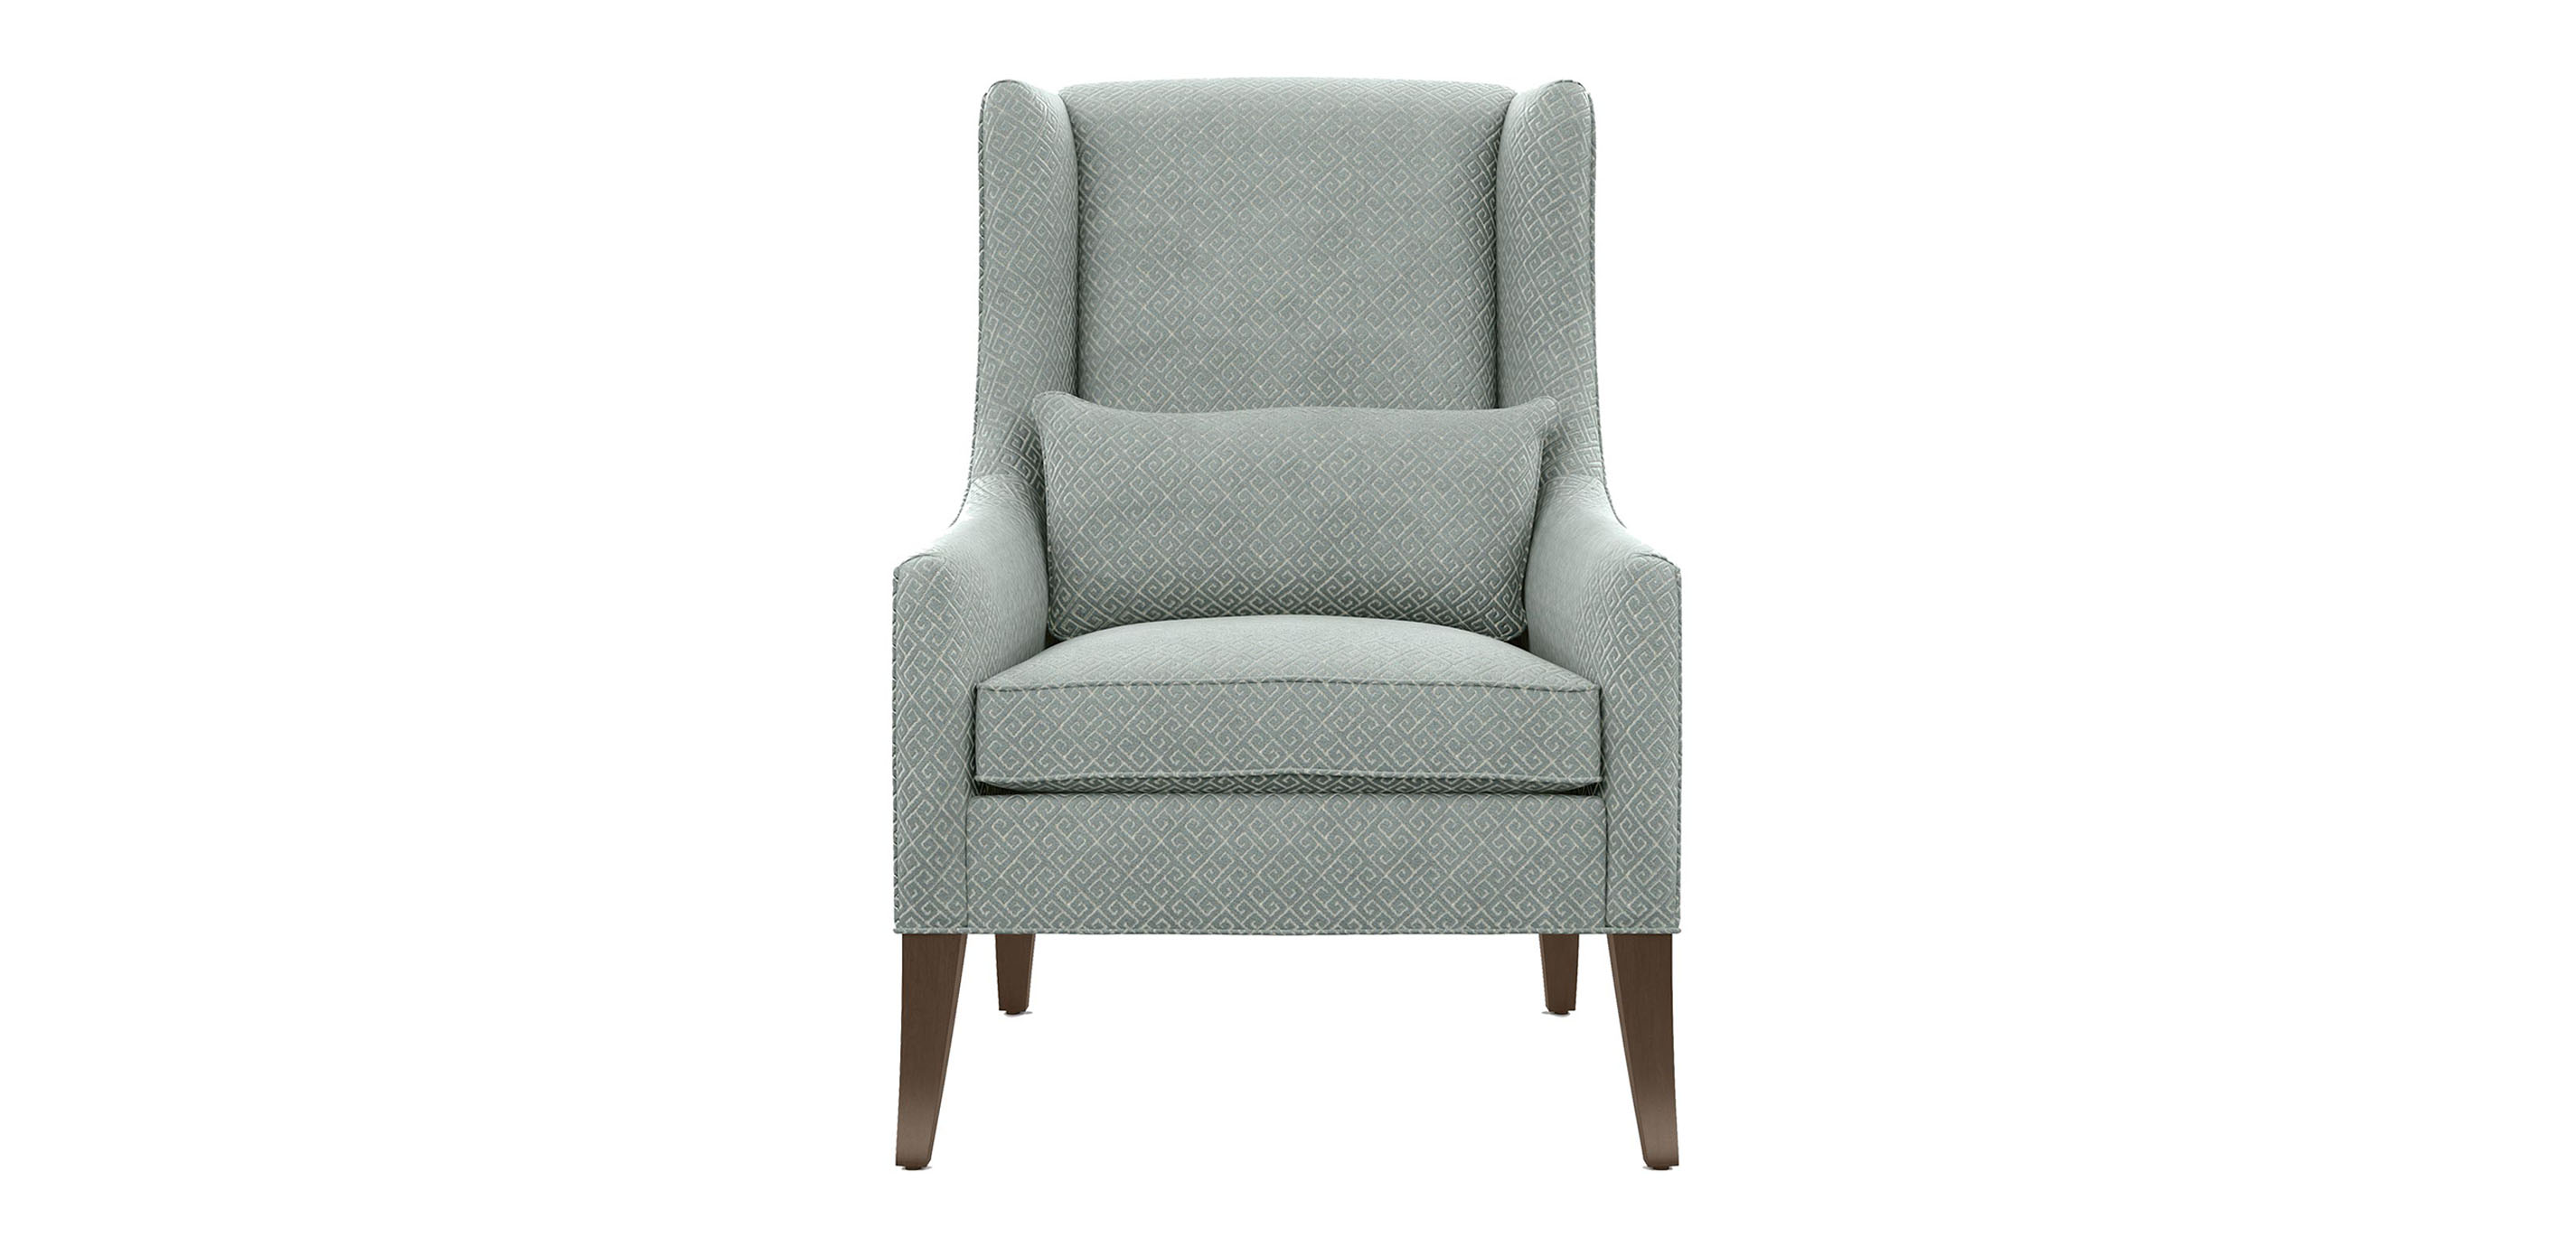 Kyle Wing Chair  Chairs  Chaises  Ethan Allen